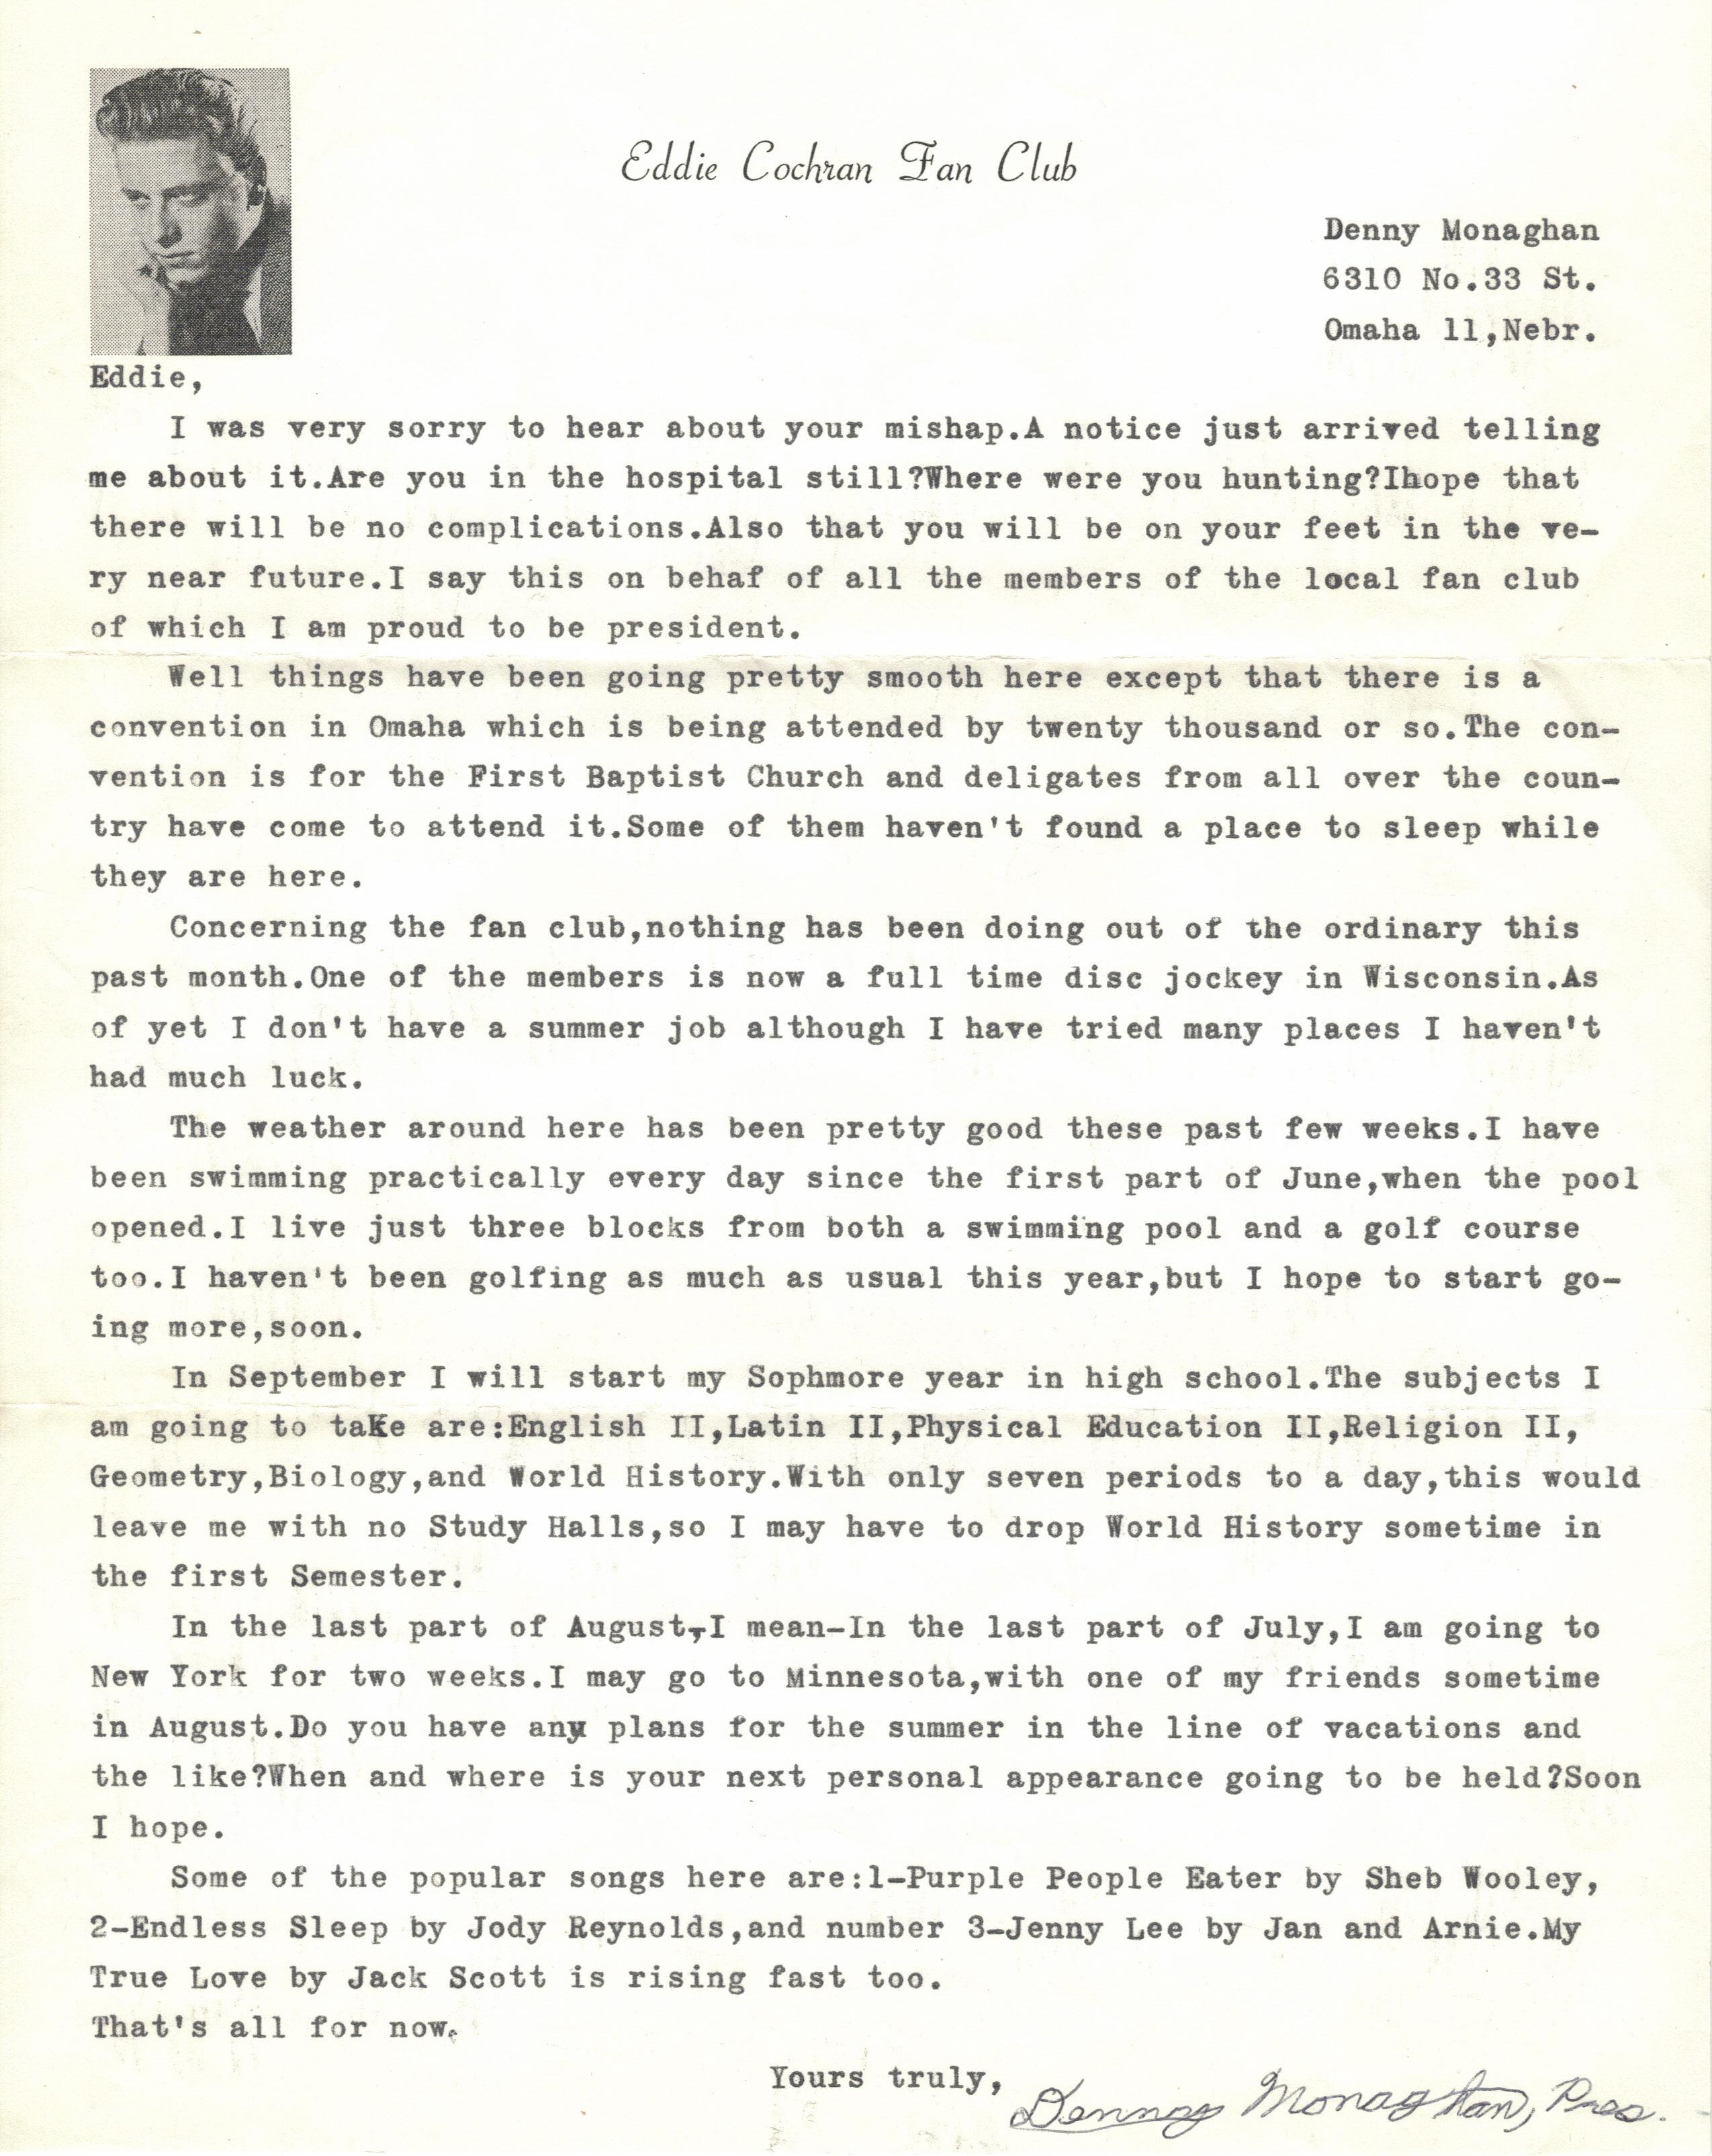 52637_fan_club_letter_inside_122_109lo.jpg